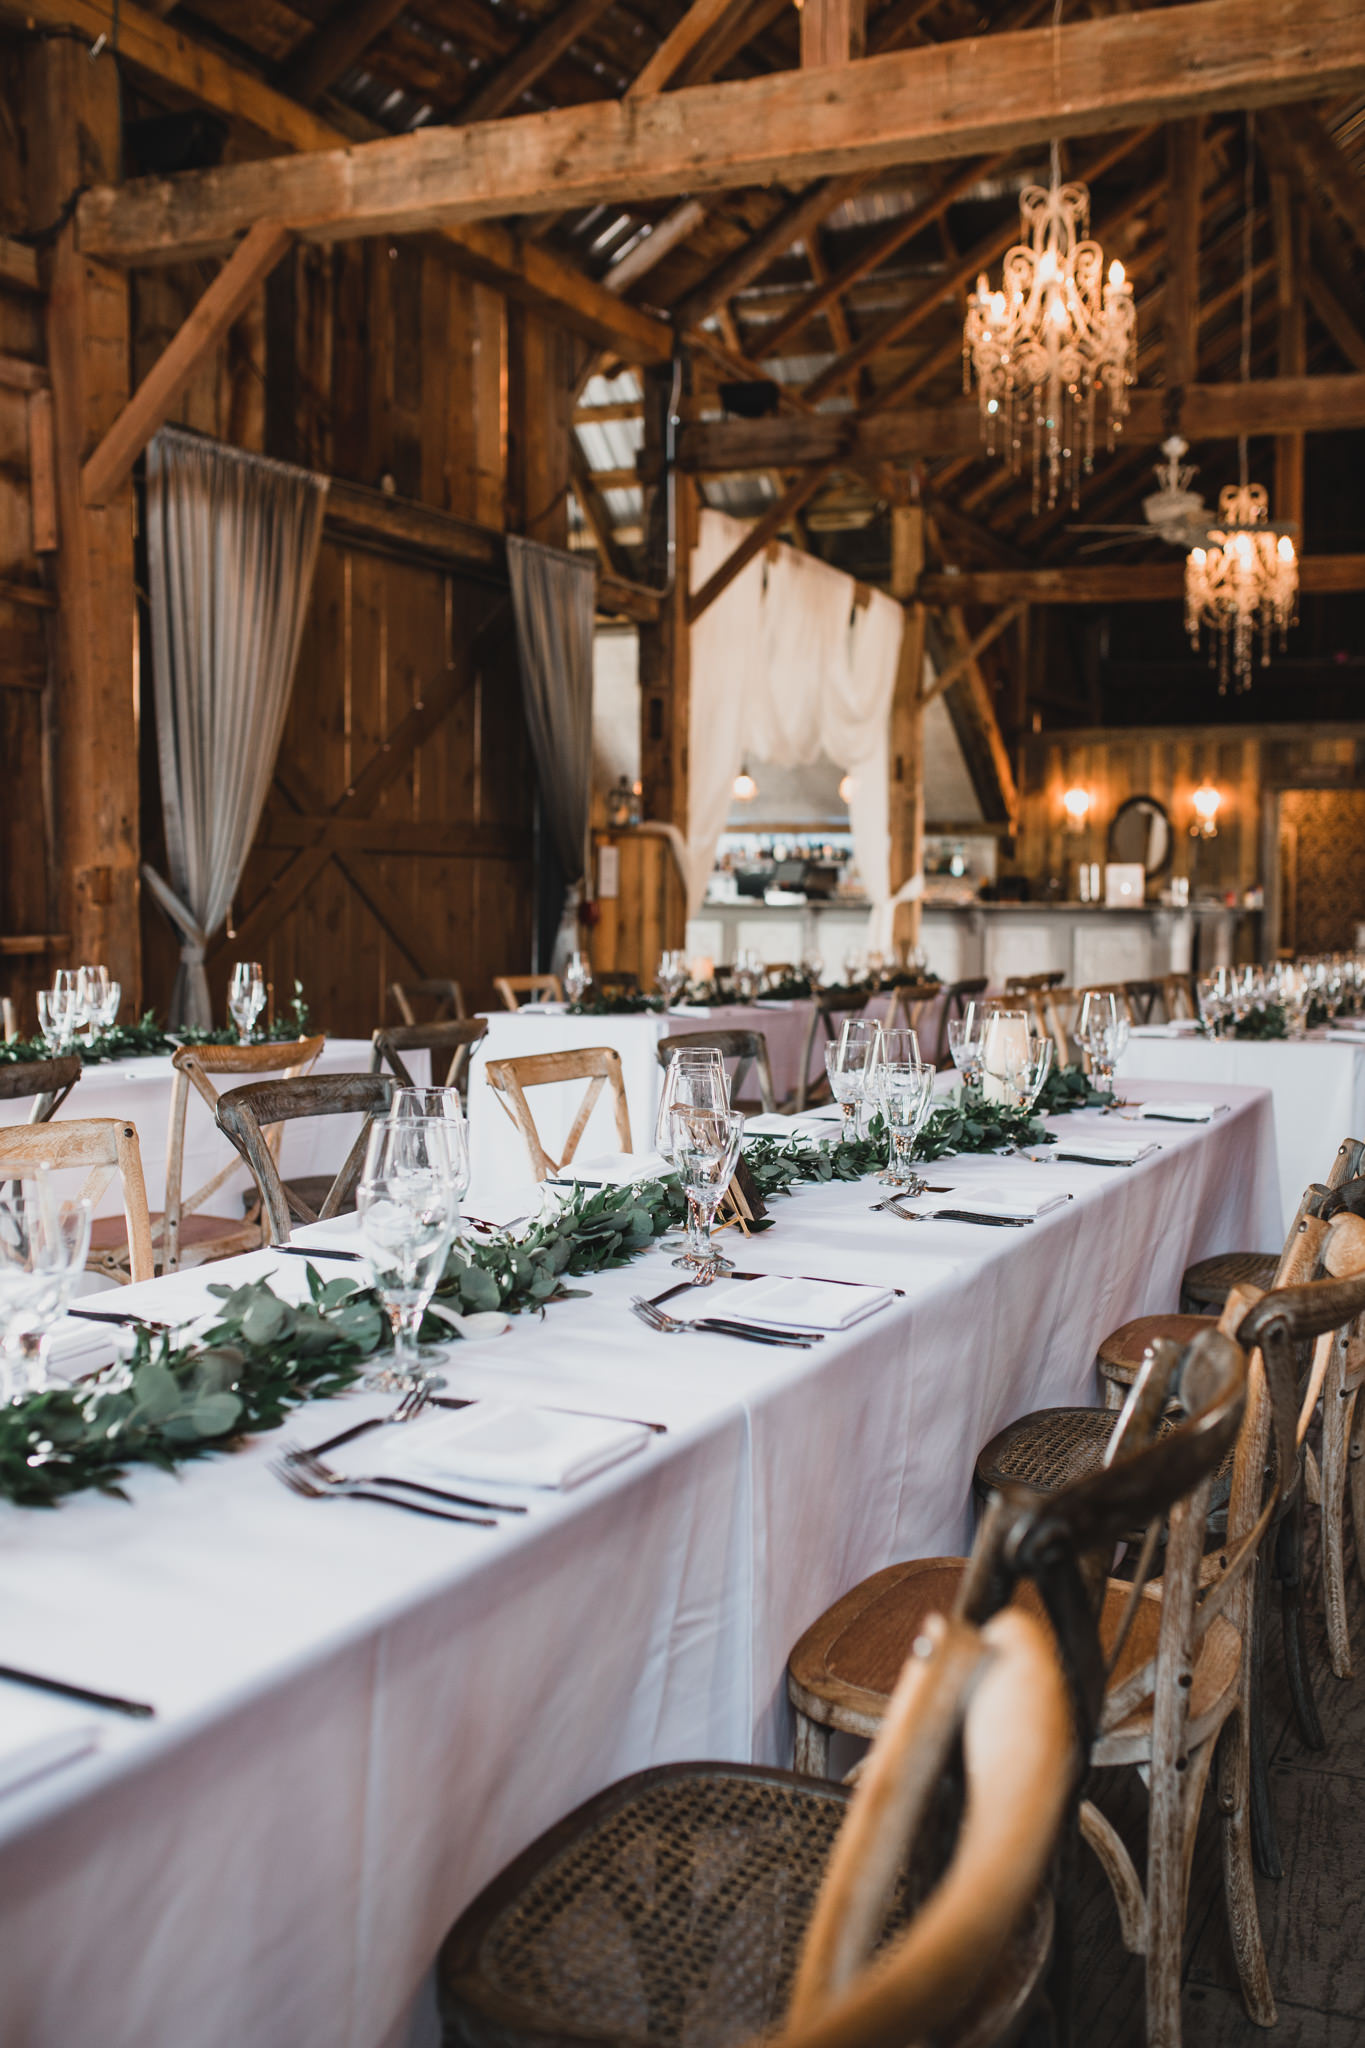 Ottawa rustic wedding venues, Evermore in Almonte